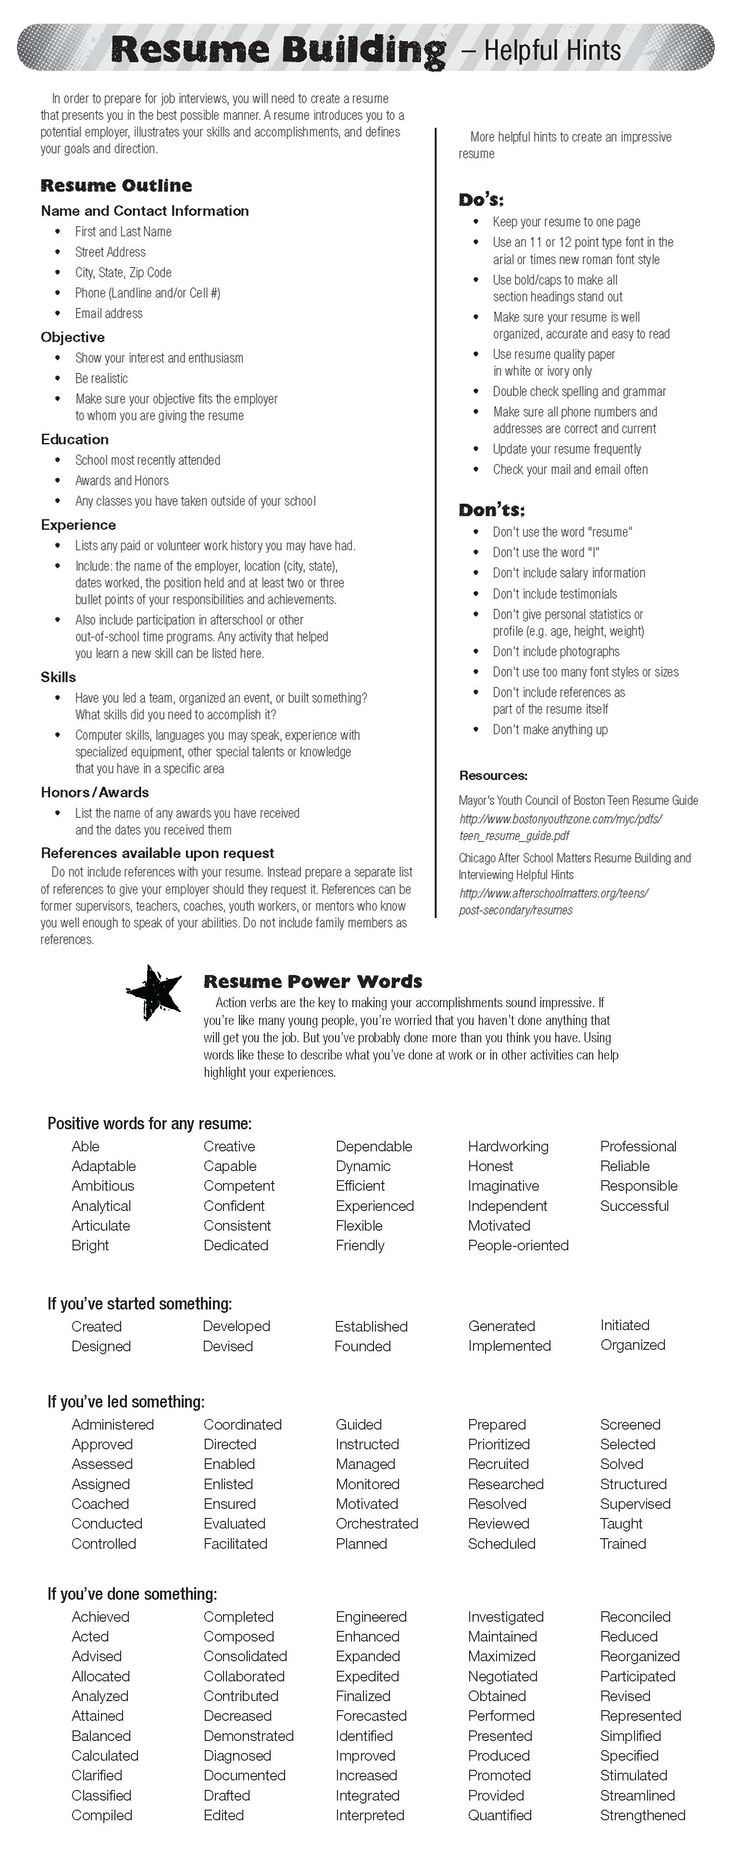 Opposenewapstandardsus  Winning  Ideas About Resume On Pinterest  Cv Format Resume Cv And  With Inspiring  Ideas About Resume On Pinterest  Cv Format Resume Cv And Resume Templates With Extraordinary Nicu Nurse Resume Also It Resume Templates In Addition Skills Used For Resume And Gamestop Resume As Well As Customer Service Objective For Resume Additionally Resum Template From Pinterestcom With Opposenewapstandardsus  Inspiring  Ideas About Resume On Pinterest  Cv Format Resume Cv And  With Extraordinary  Ideas About Resume On Pinterest  Cv Format Resume Cv And Resume Templates And Winning Nicu Nurse Resume Also It Resume Templates In Addition Skills Used For Resume From Pinterestcom